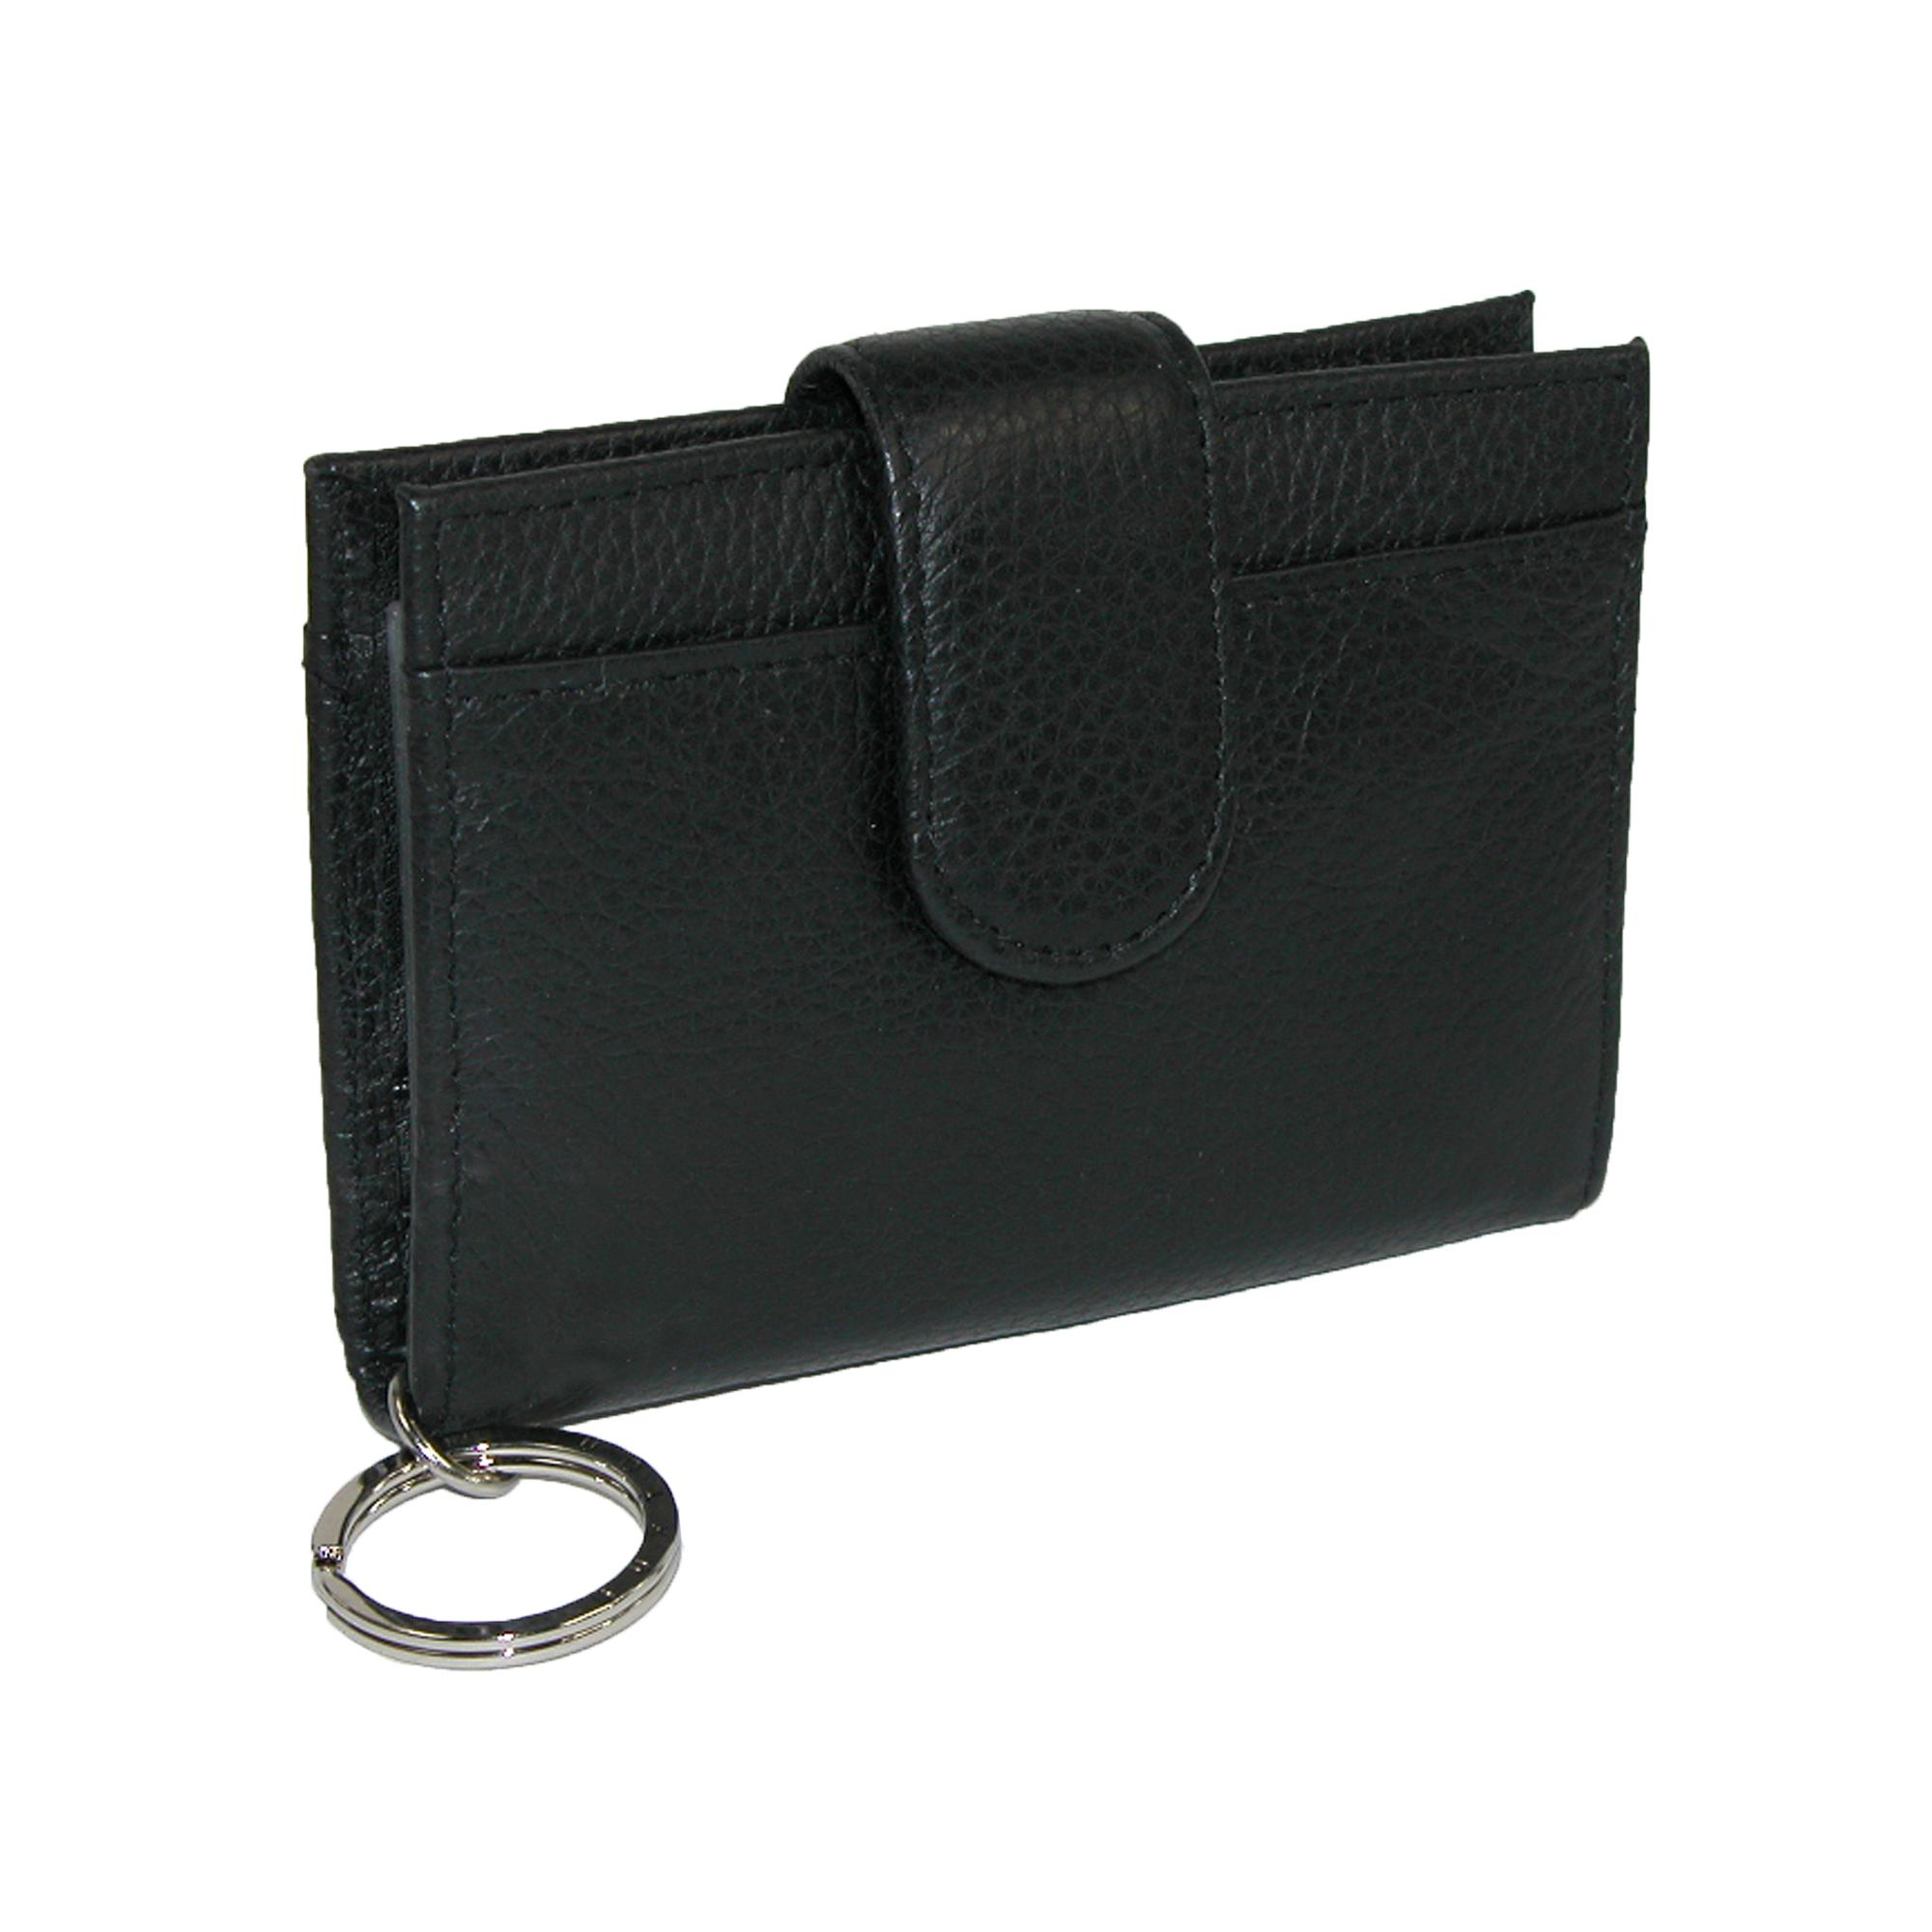 ba709856d3c8bd Key Wallet For Women   Stanford Center for Opportunity Policy in ...